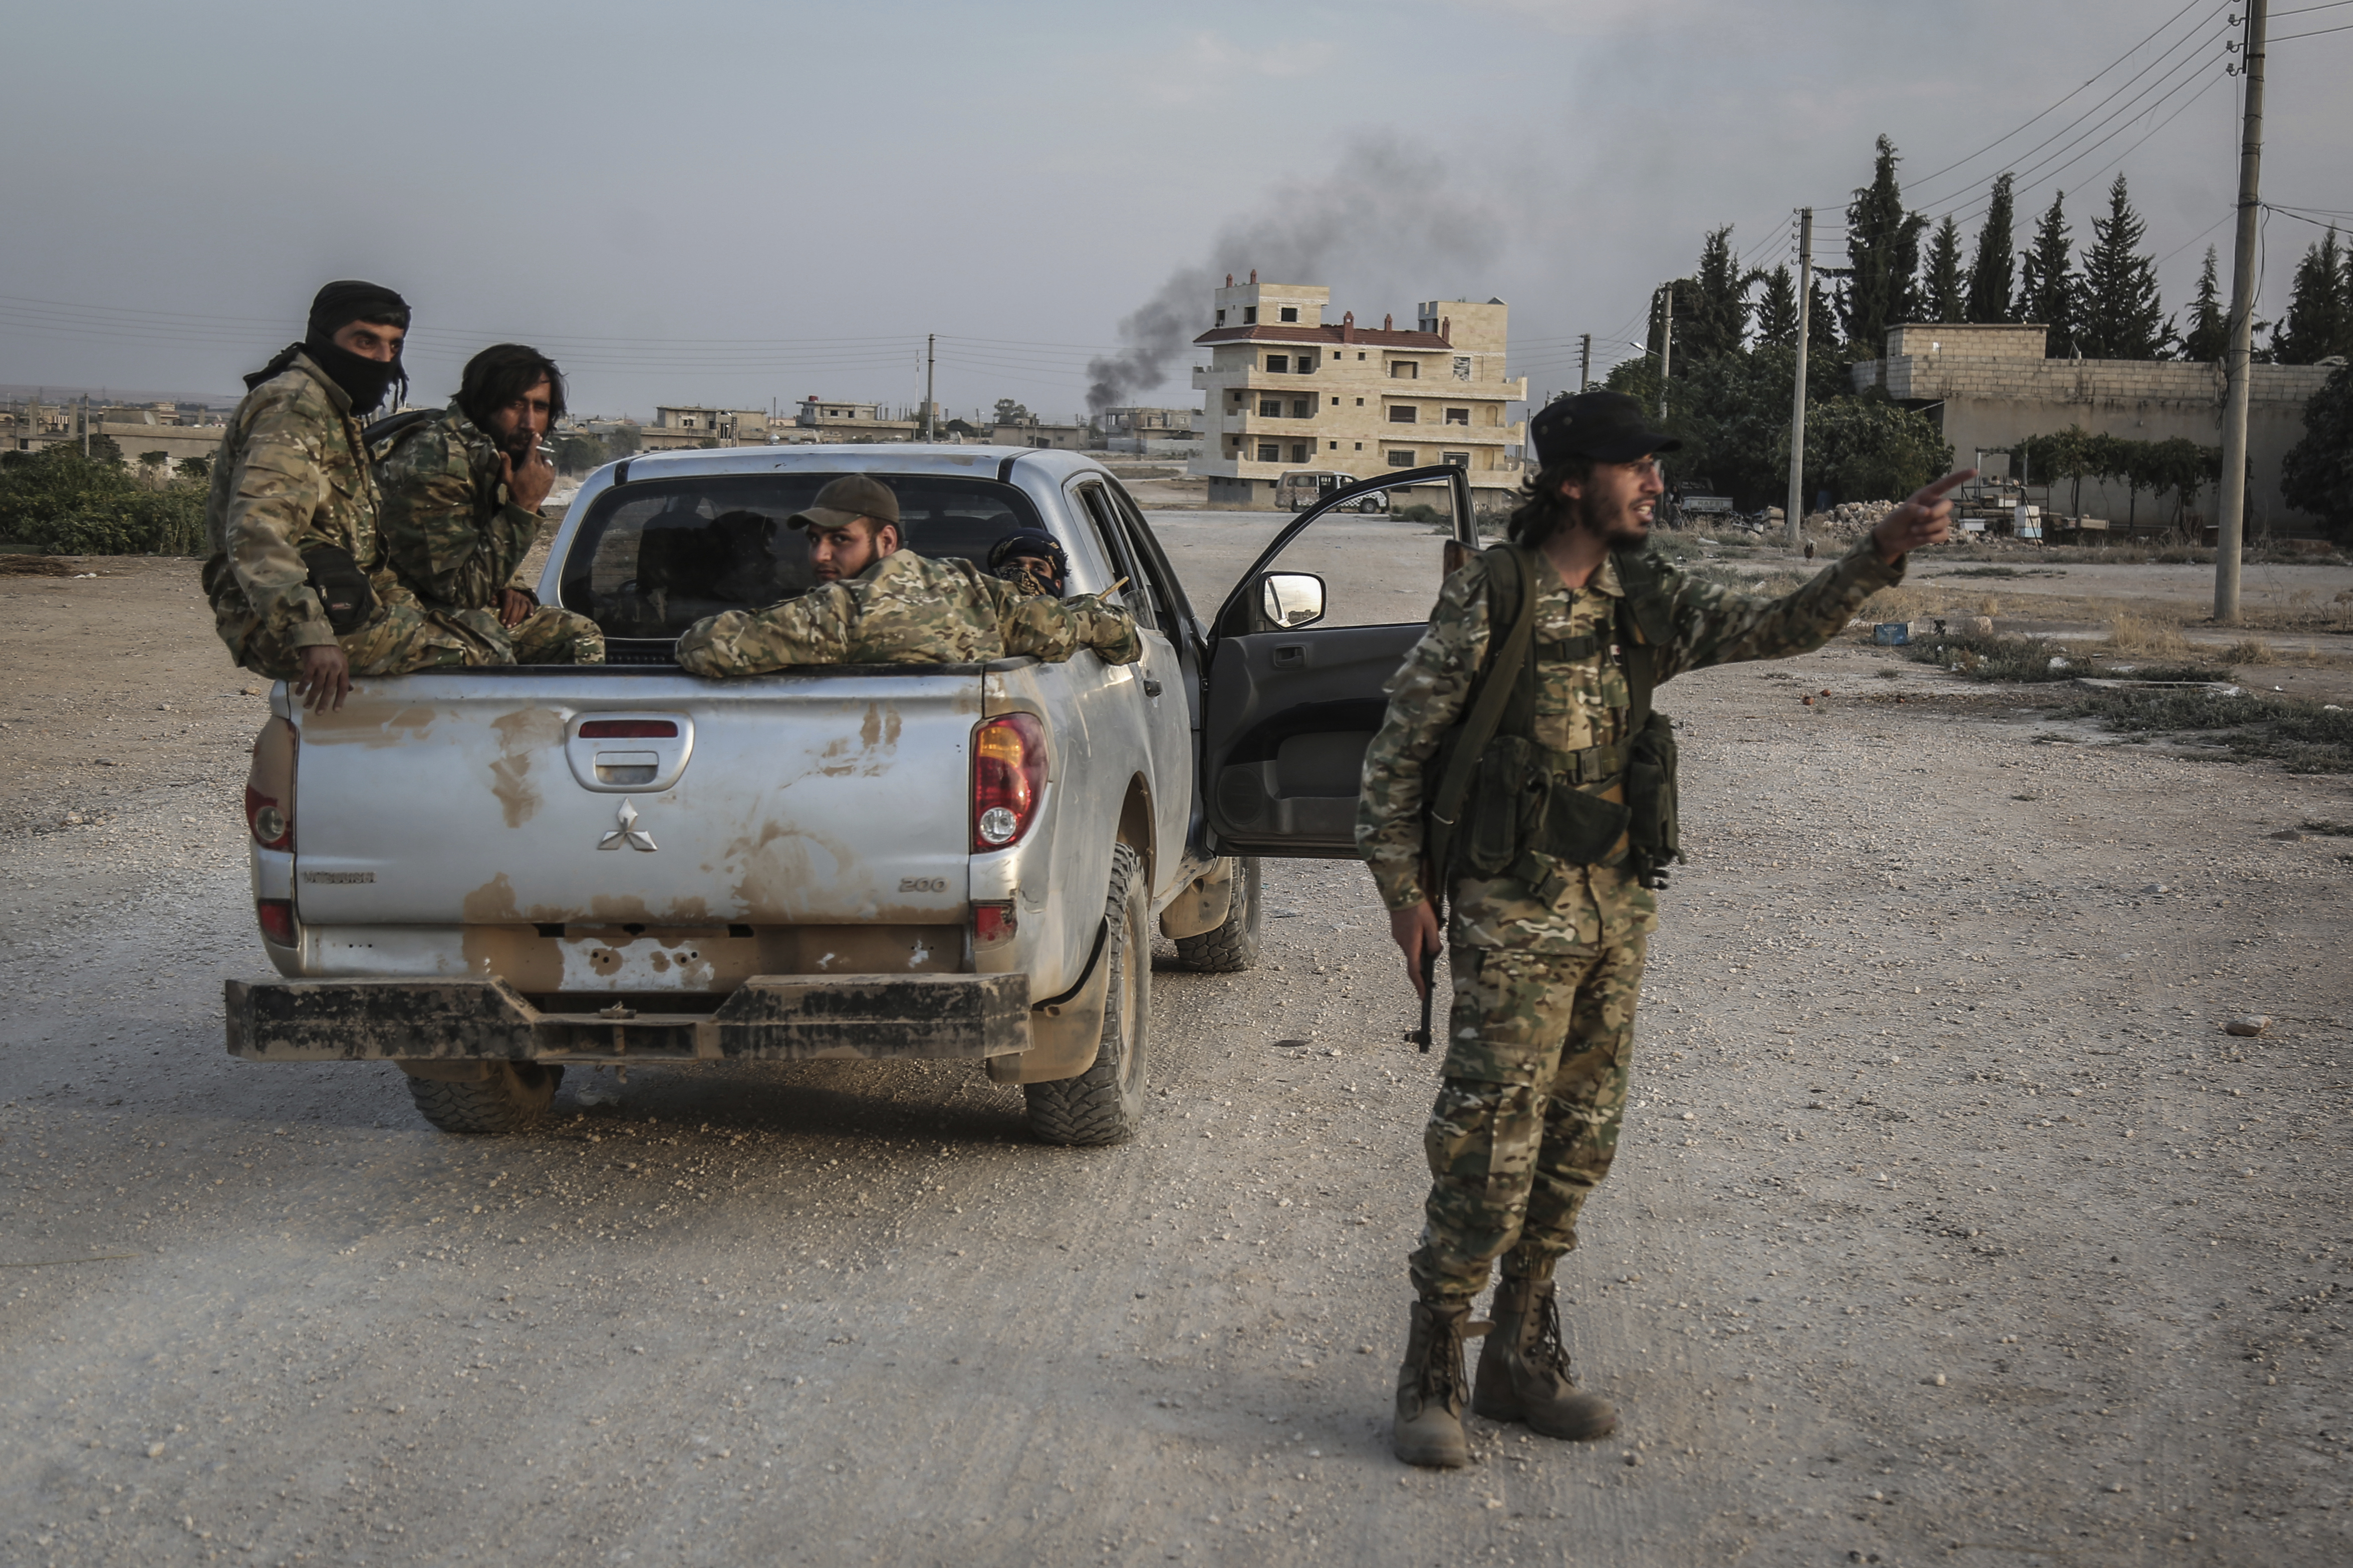 14 October 2019, Syria, Tell Abiad: Soldiers of the Turkish-backed Syrian National Army patrol a street after clashes with Kurdish fighters. Photo by: Anas Alkharboutli/picture-alliance/dpa/AP Images